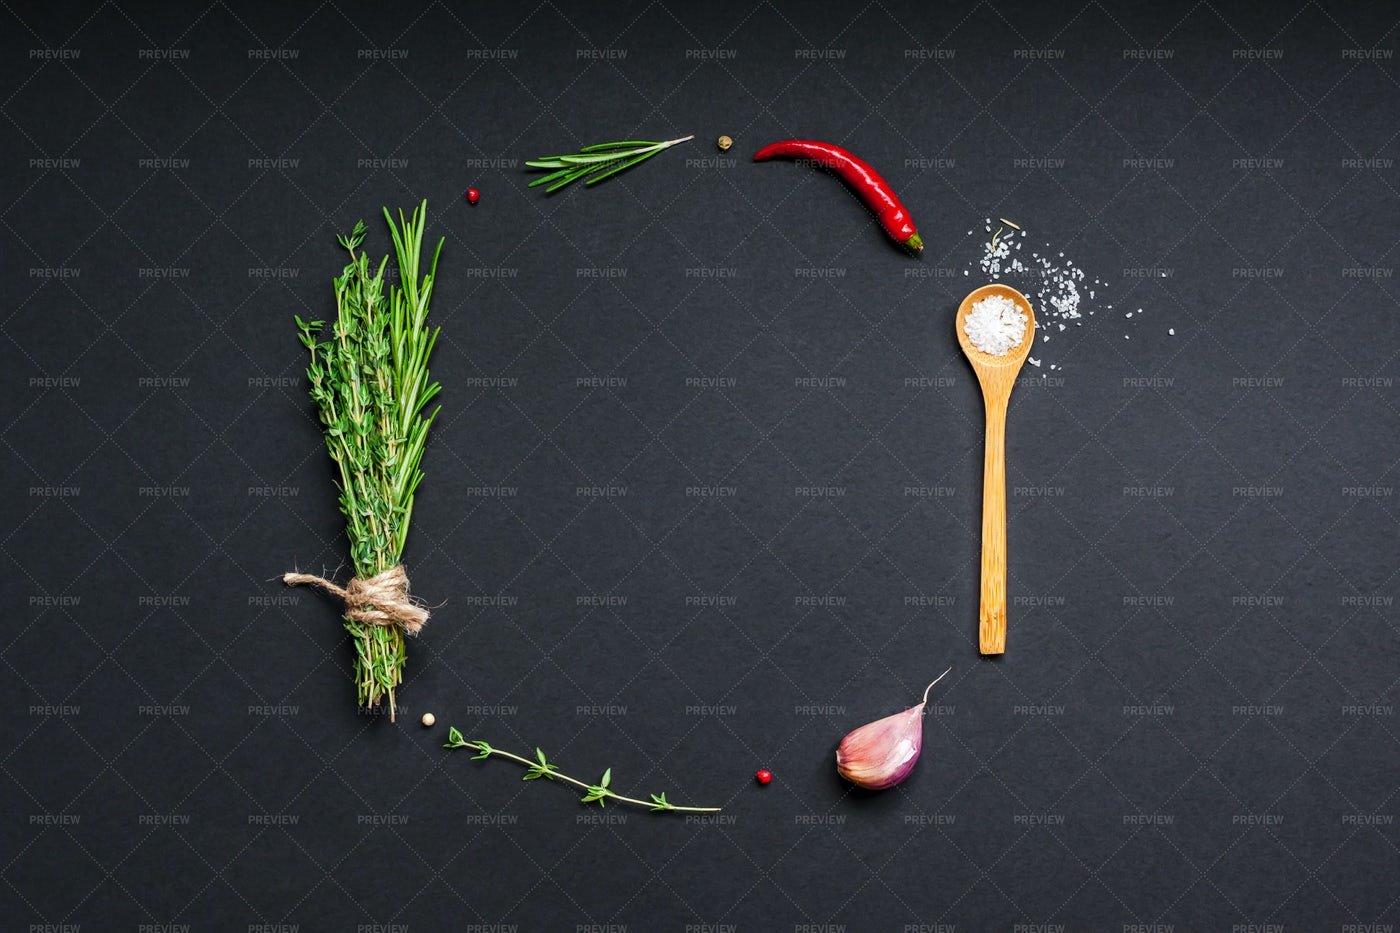 Food Background With Greens And Herbs: Stock Photos